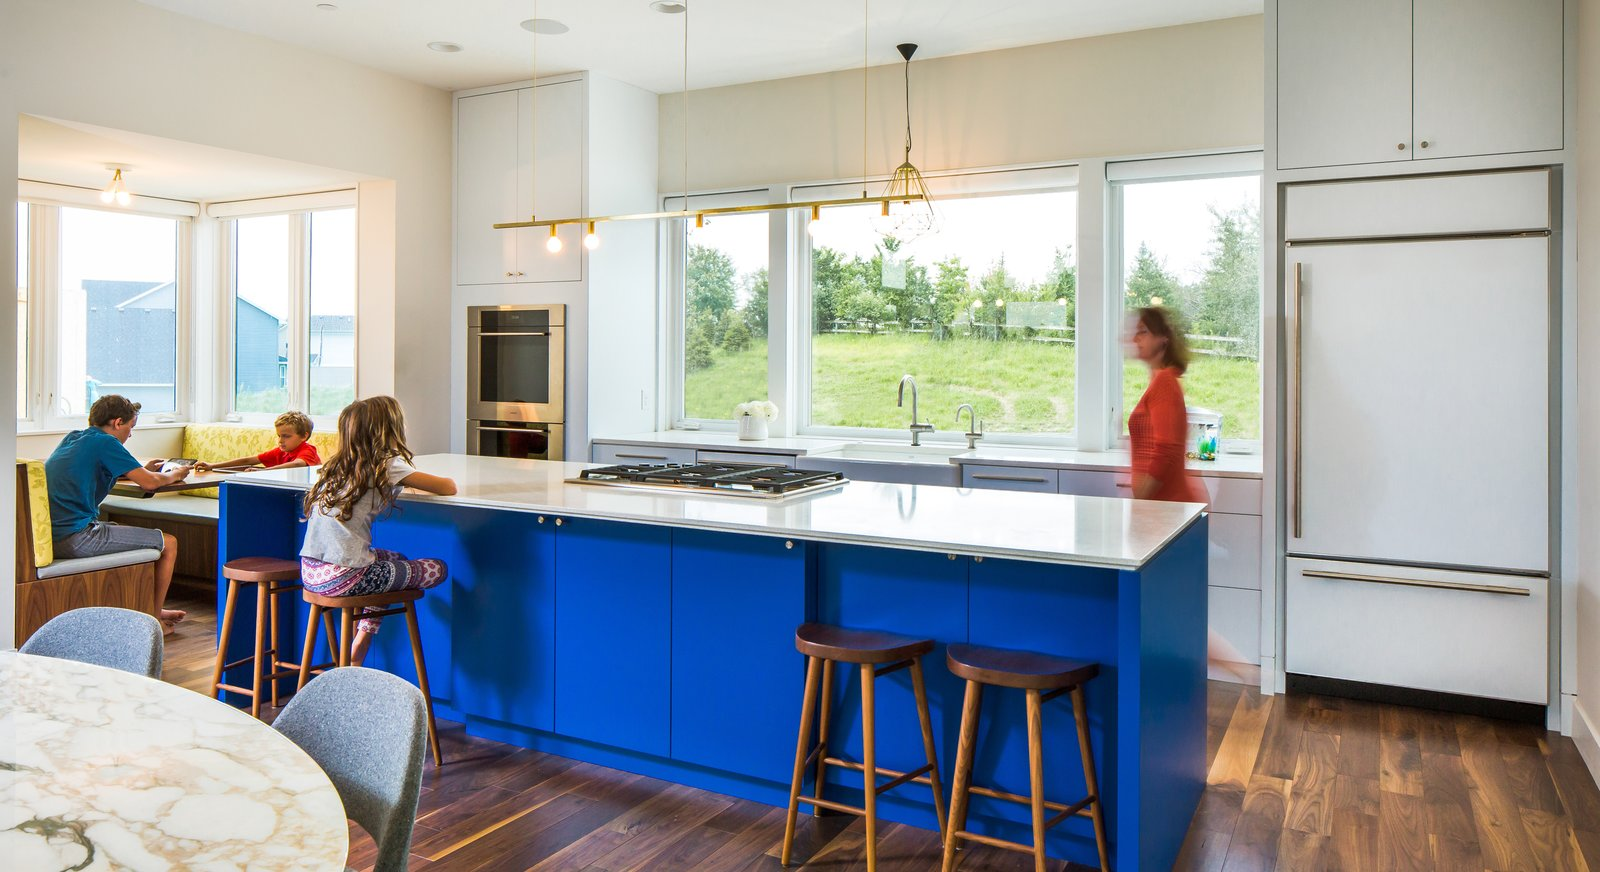 Tagged: Kitchen, Engineered Quartz Counter, White Cabinet, Colorful Cabinet, Medium Hardwood Floor, Accent Lighting, Pendant Lighting, Ceiling Lighting, Wall Oven, Refrigerator, and Cooktops.  Best Photos from Credit River Residence